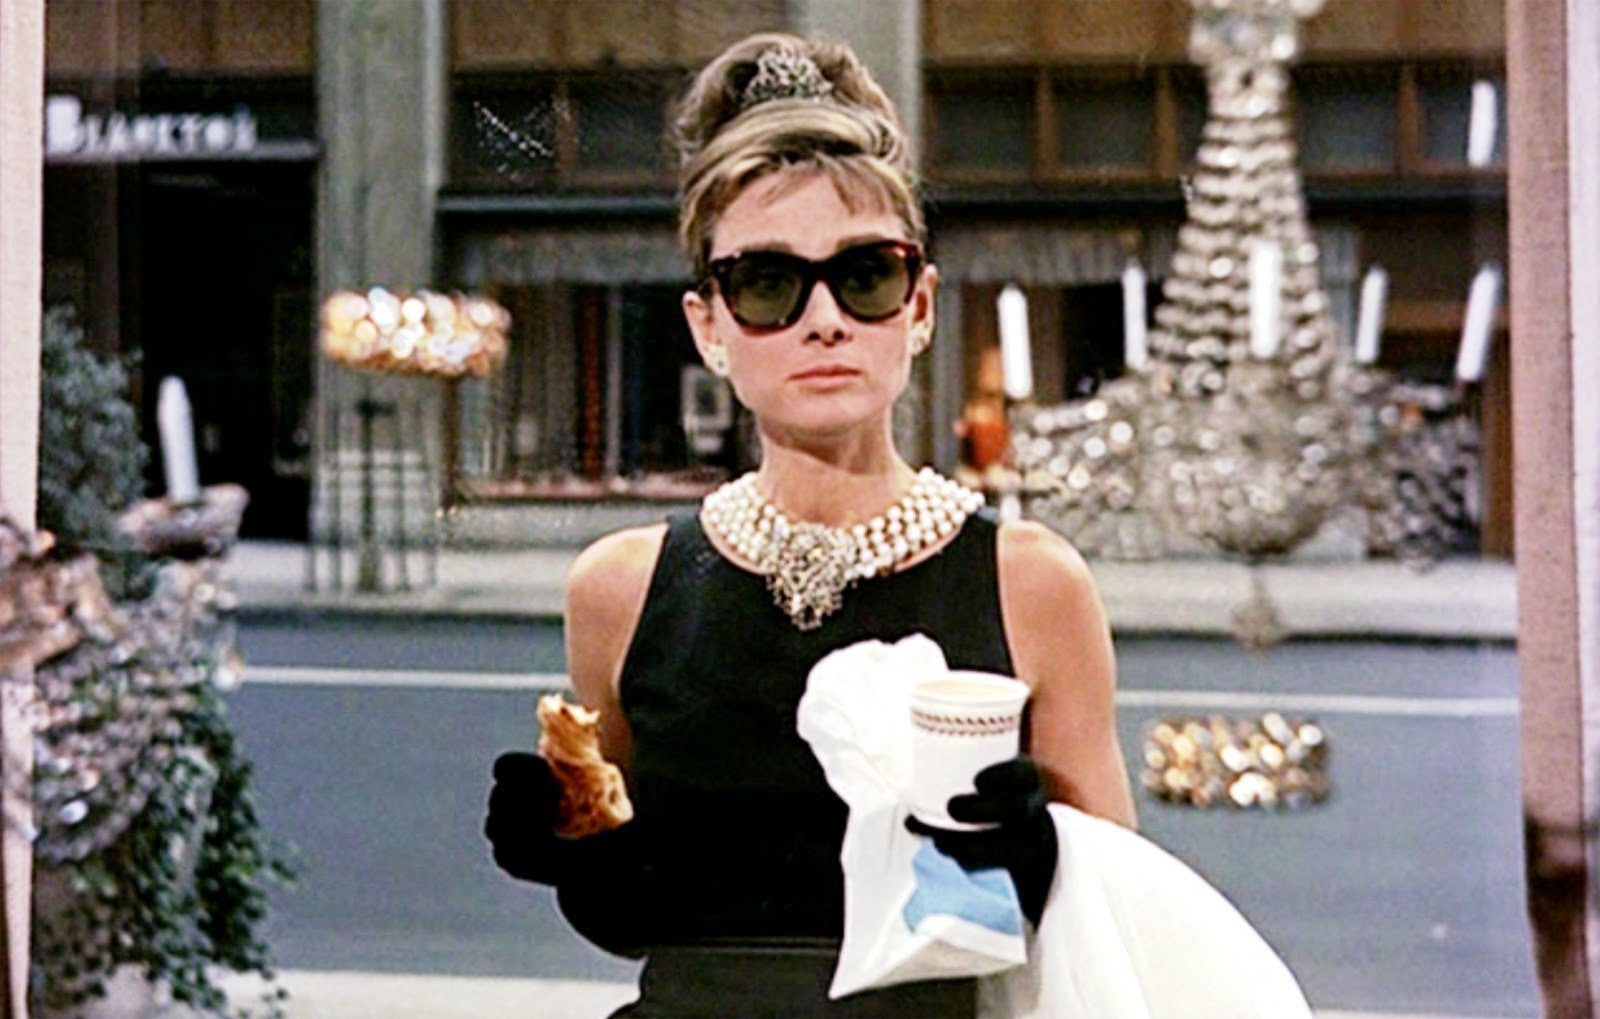 You can now have breakfast at Tiffany's